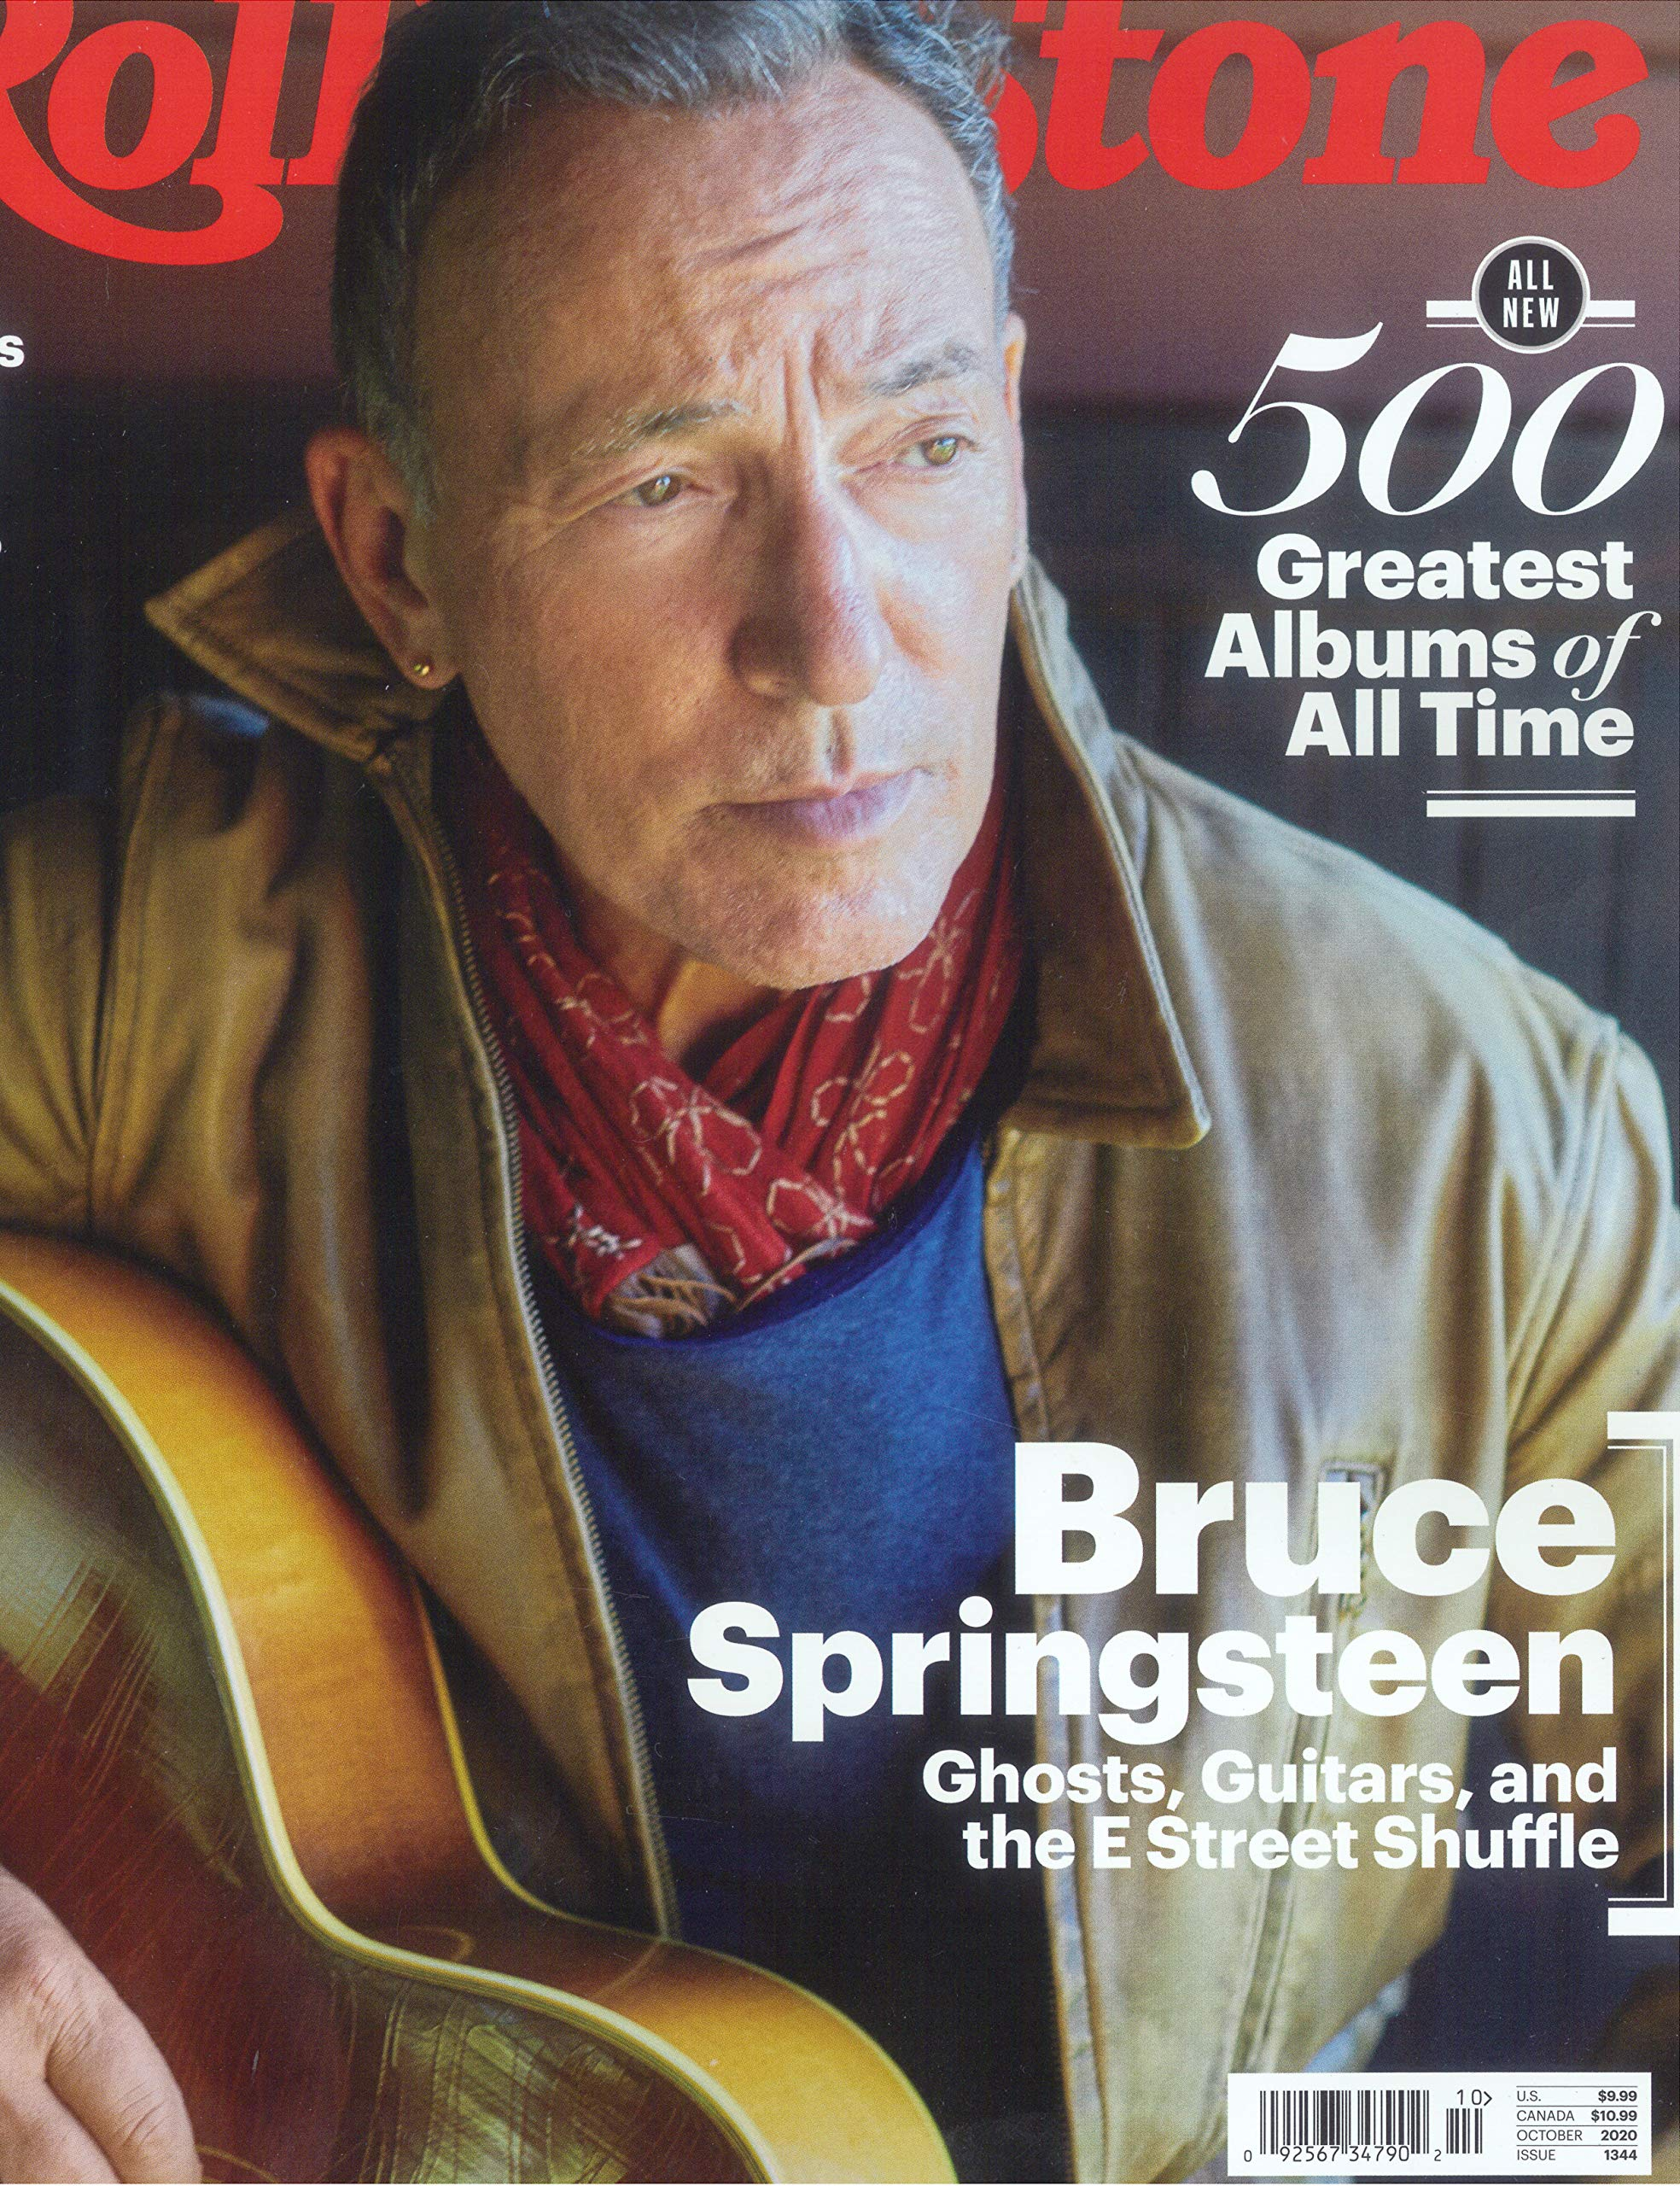 Rolling Stone Magazine (October, 2020) 500 Greatest Albums of All Time Bruce Springsteen Cover